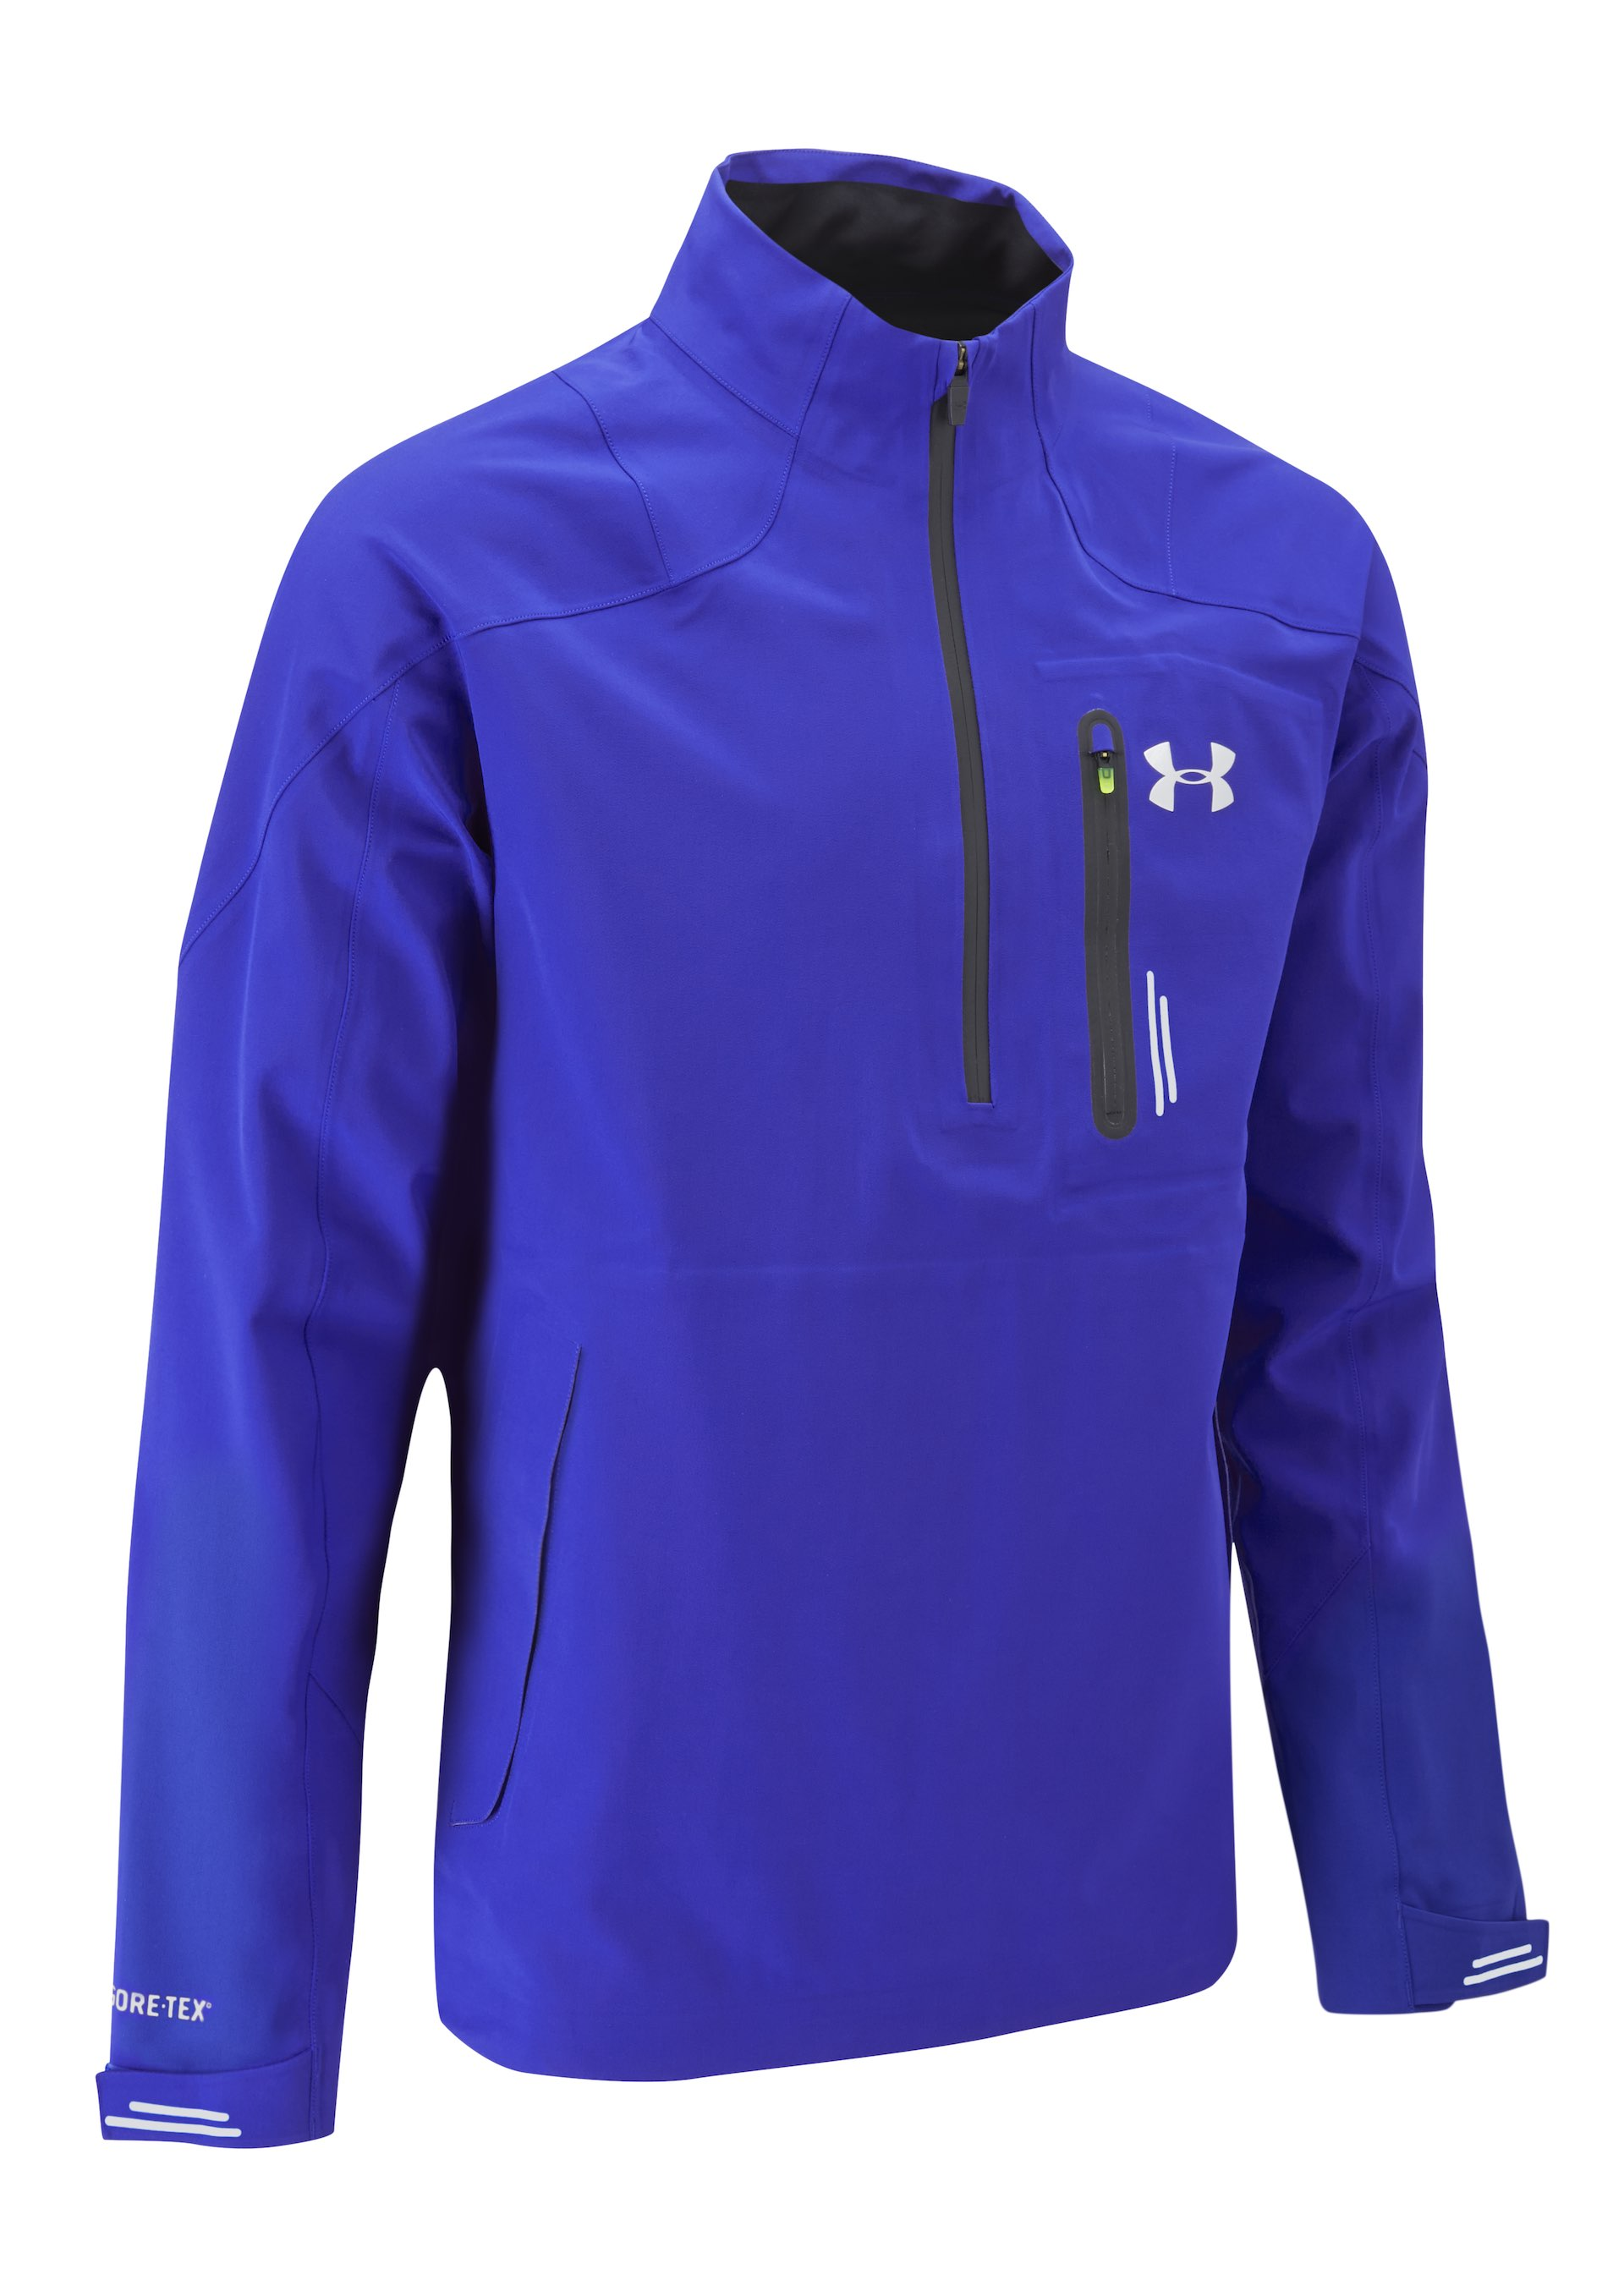 Under Armour Sort Your Winter Wardrobe